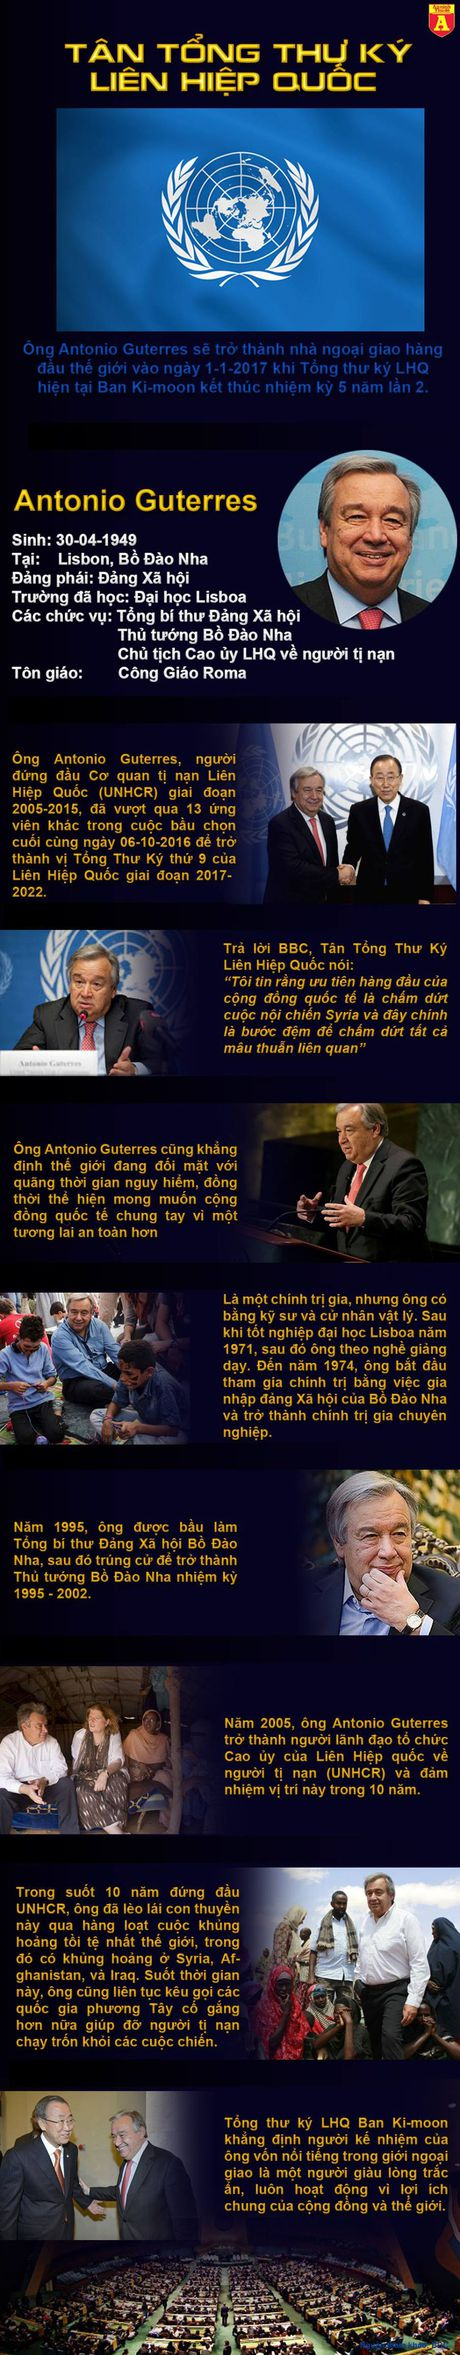 Chan dung tan Tong thu ky Lien Hiep Quoc Antonio Guterres - Anh 1